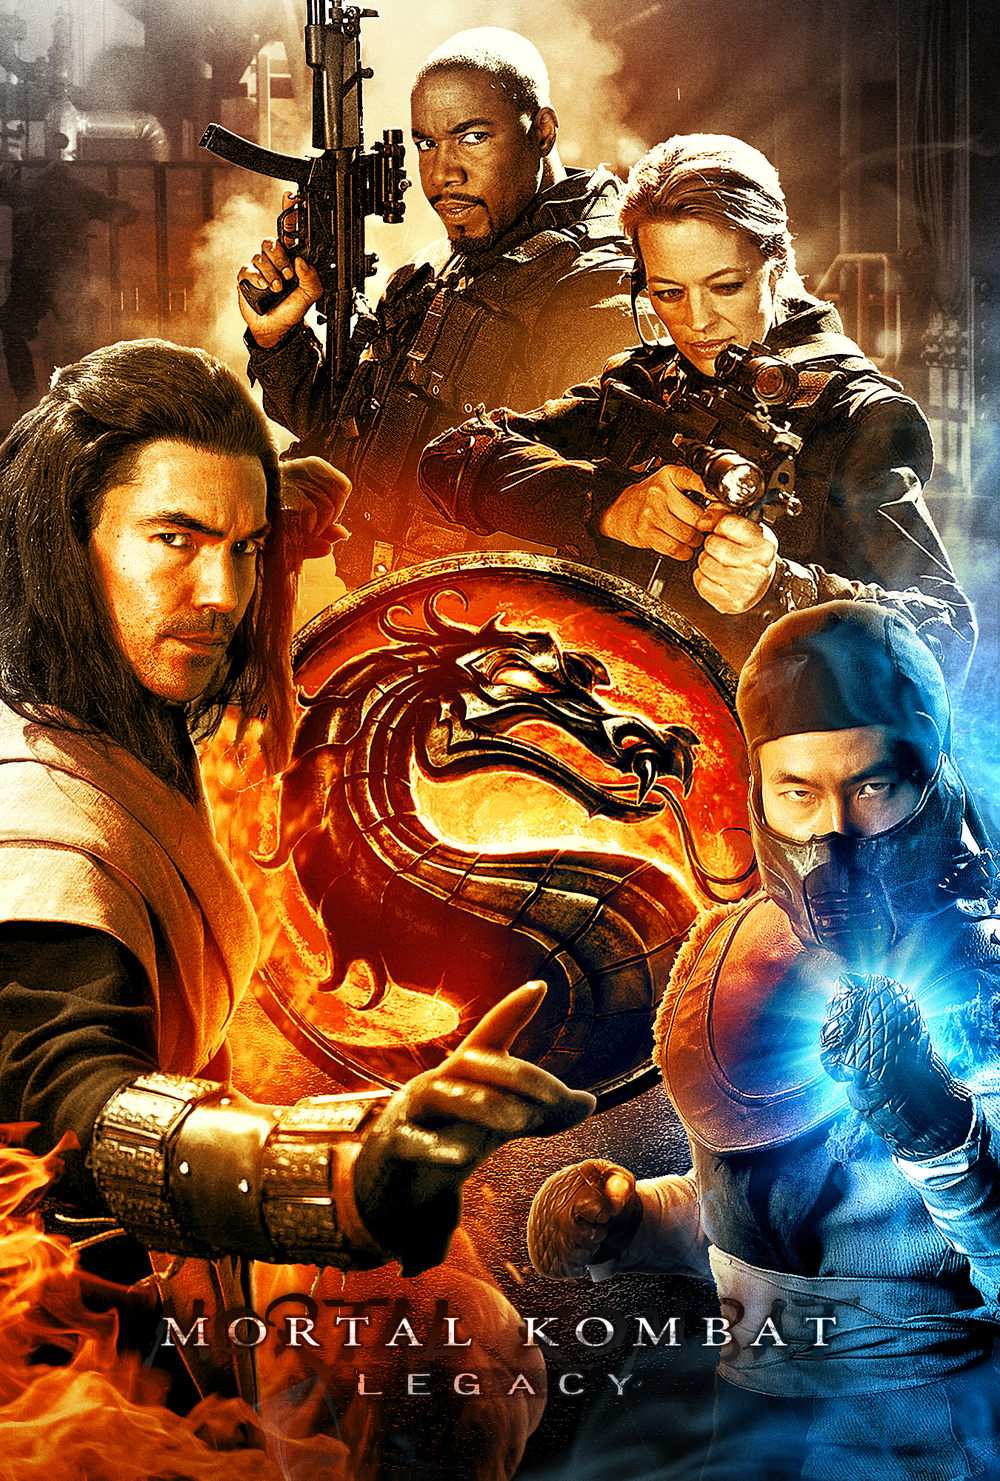 Mortal Kombat: Legacy (TV Series 2011–2013) - IMDb